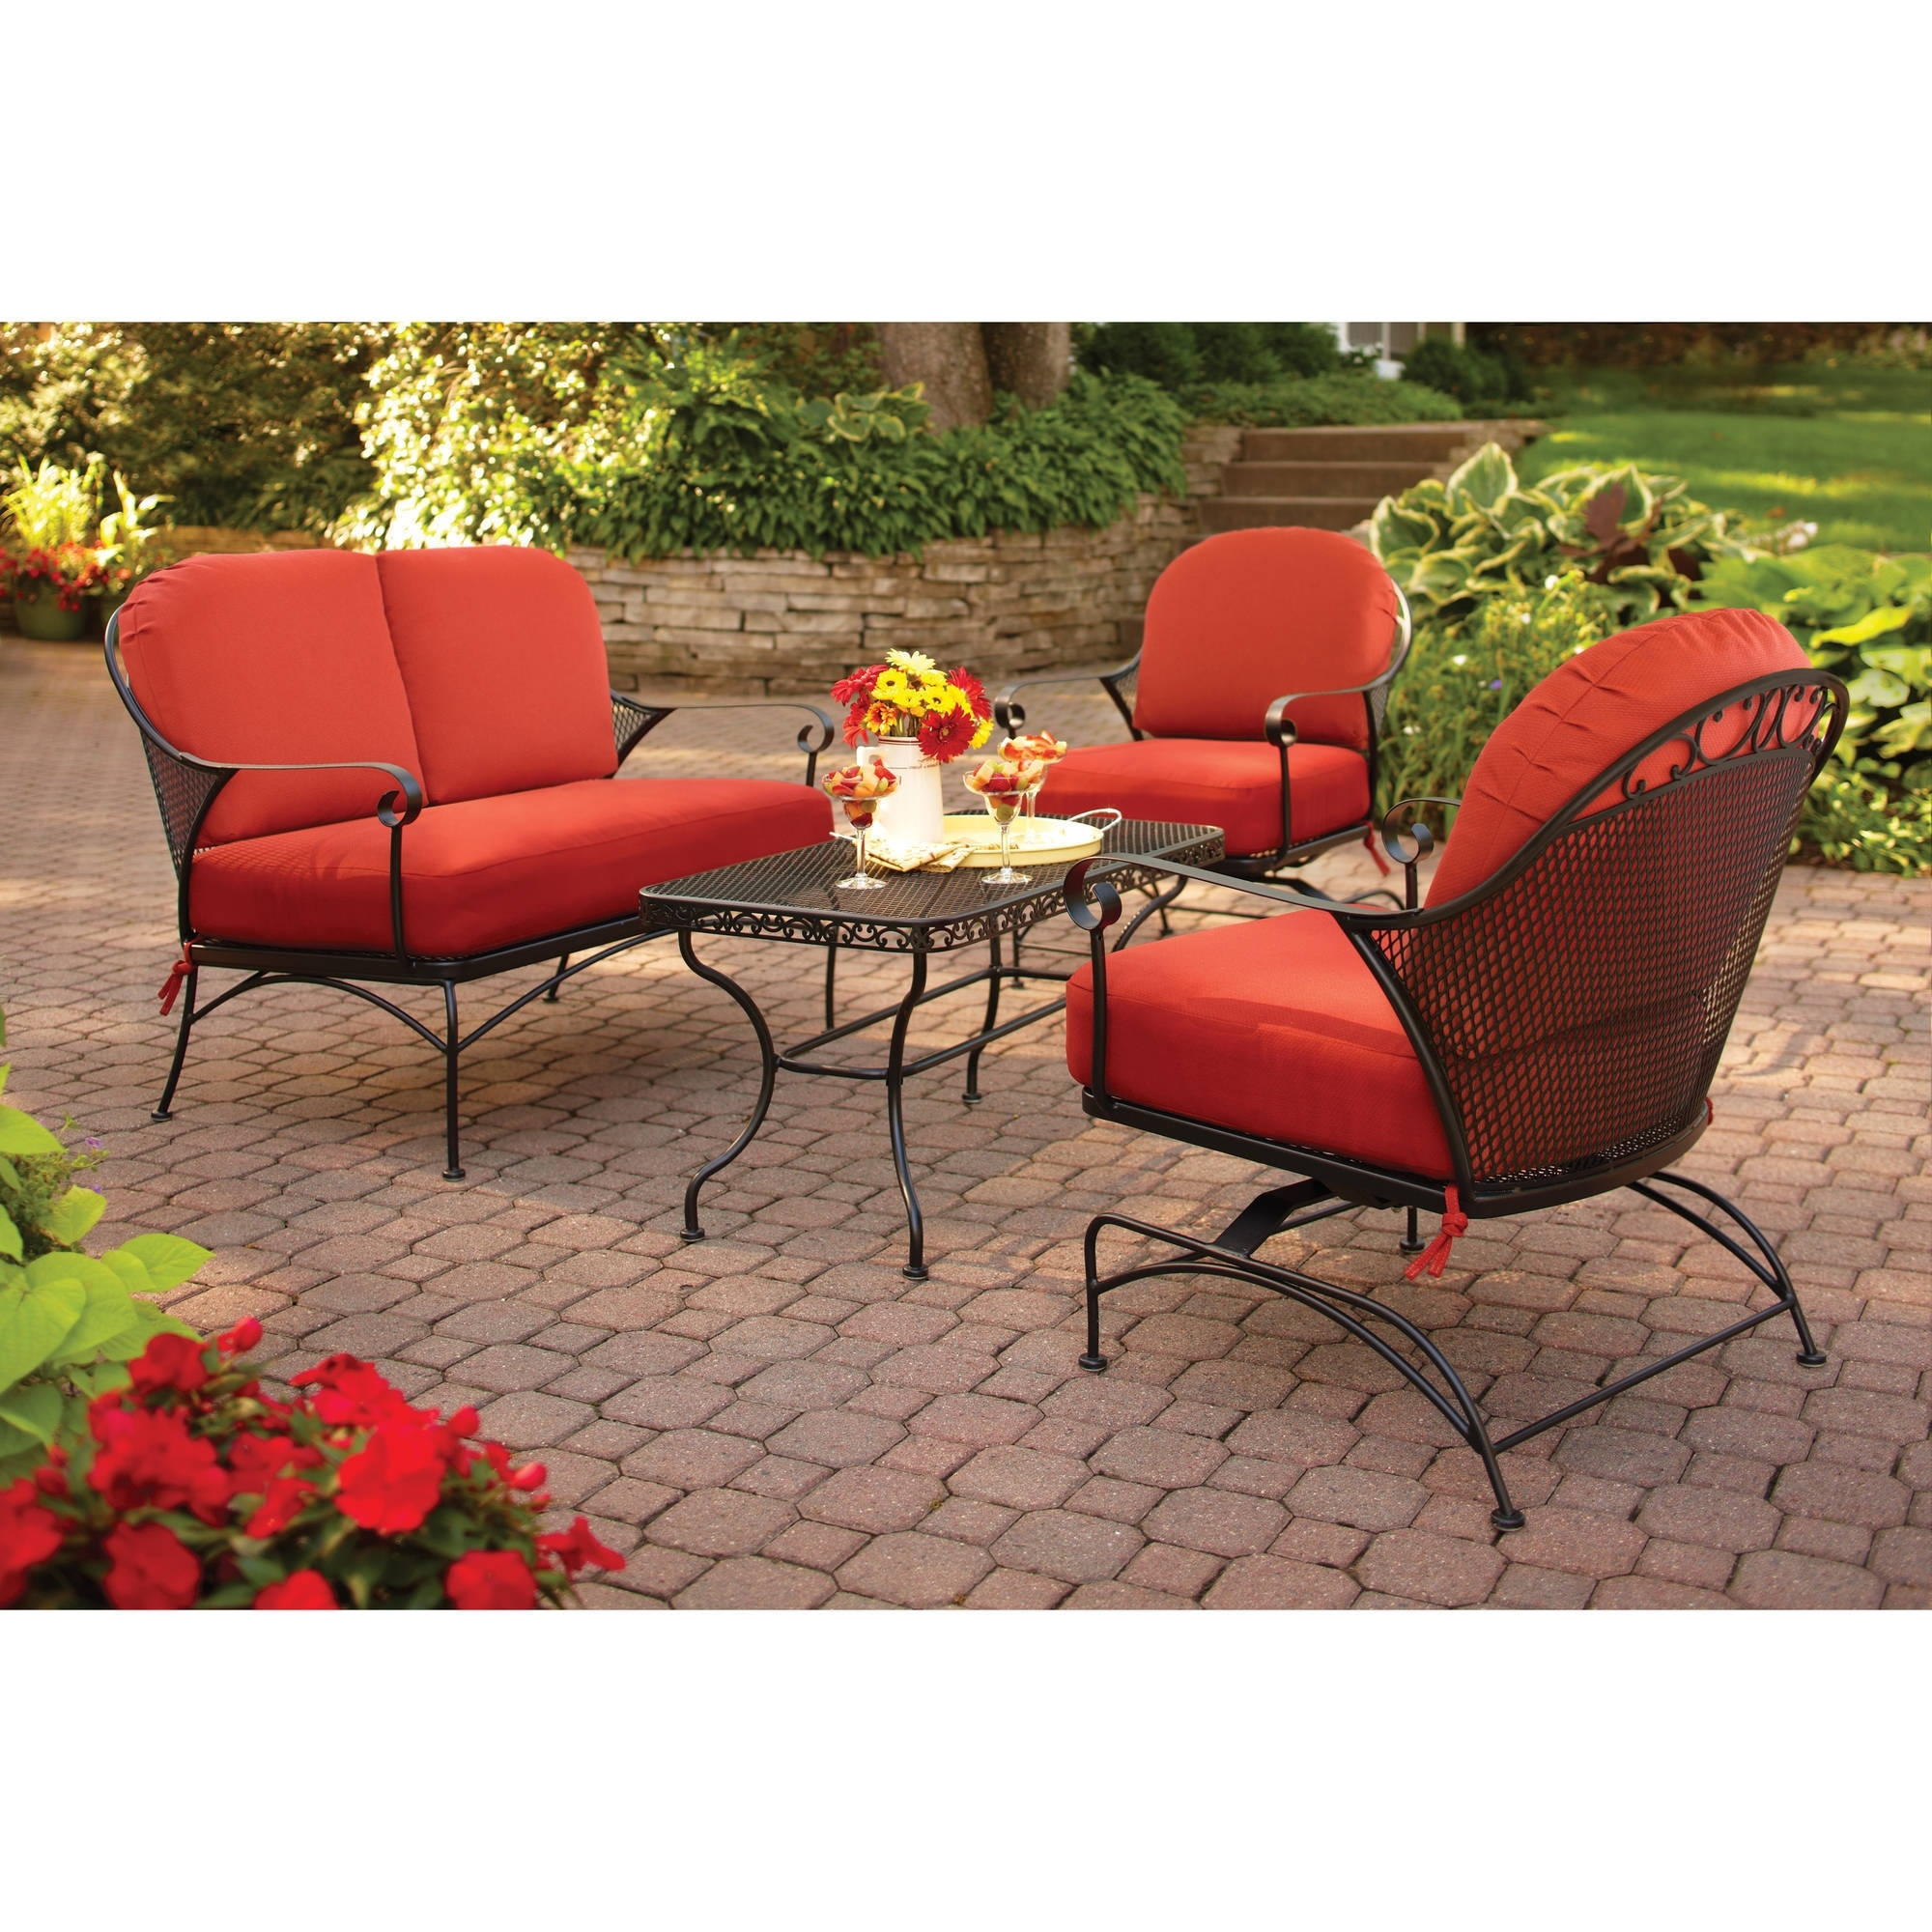 Patio Conversation Sets At Walmart Within Trendy Better Homes And Gardens Clayton Court 4 Piece Patio Conversation (View 16 of 20)